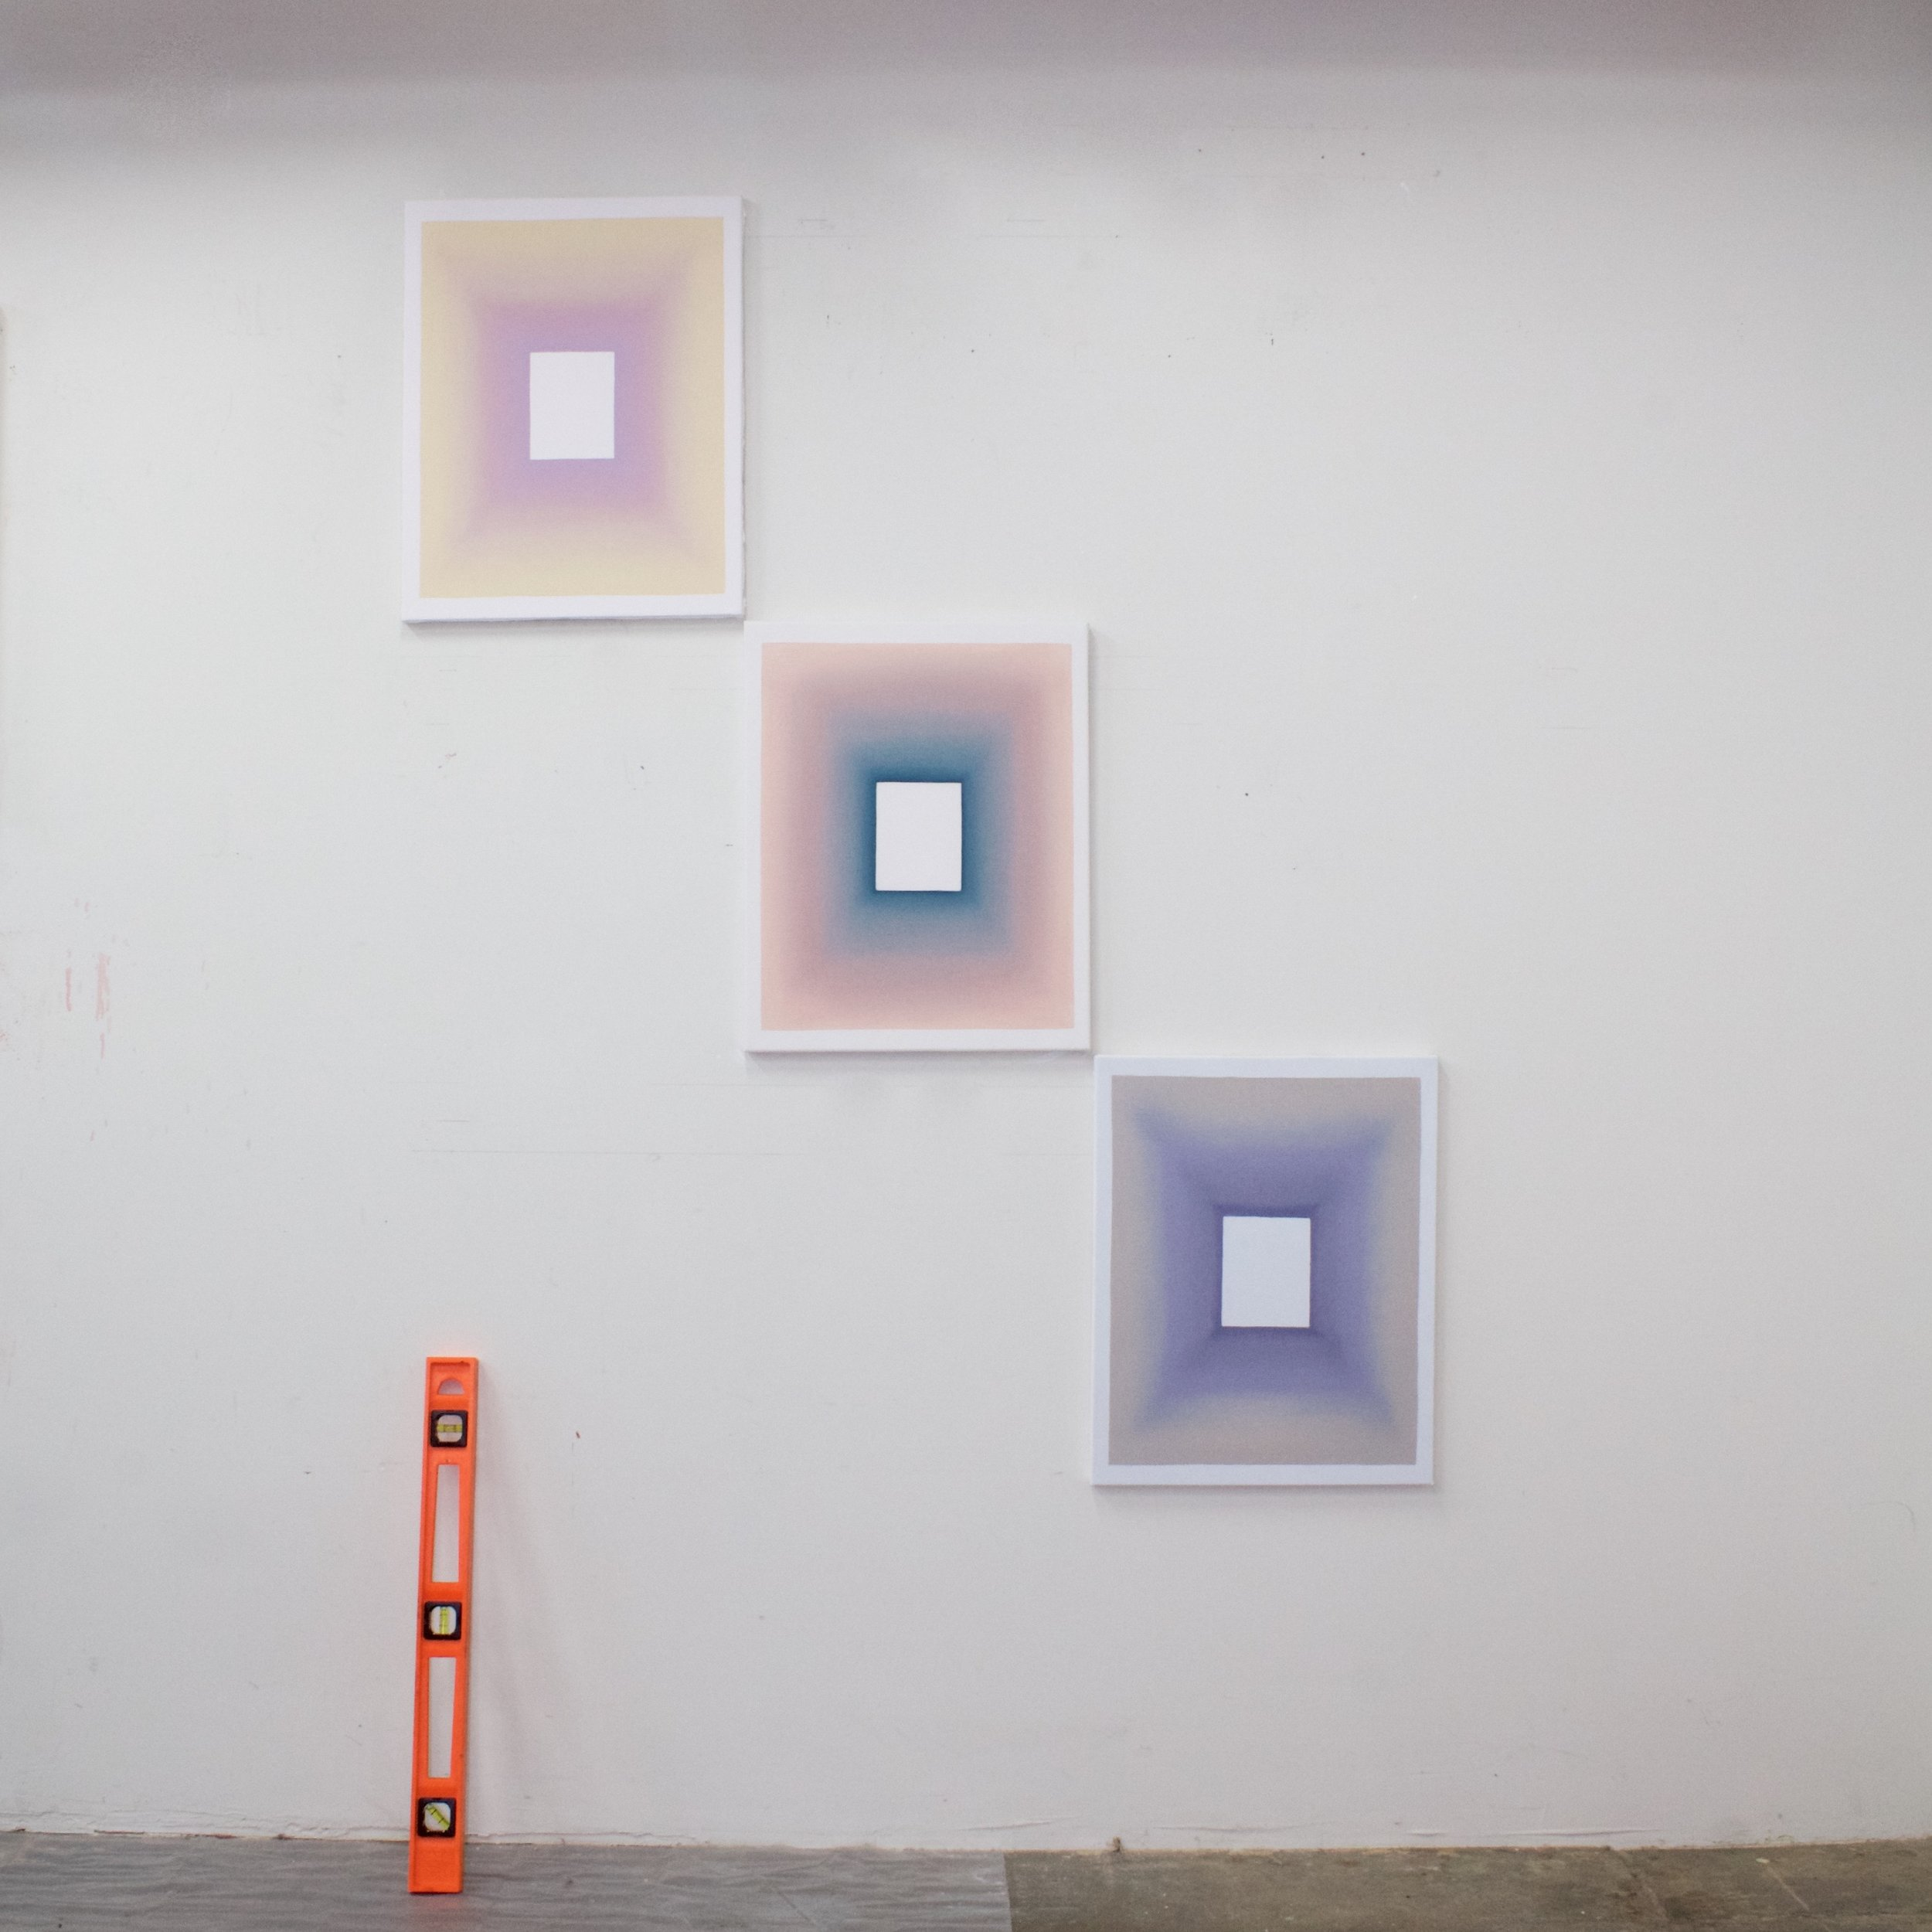 Three out of a nine part installation